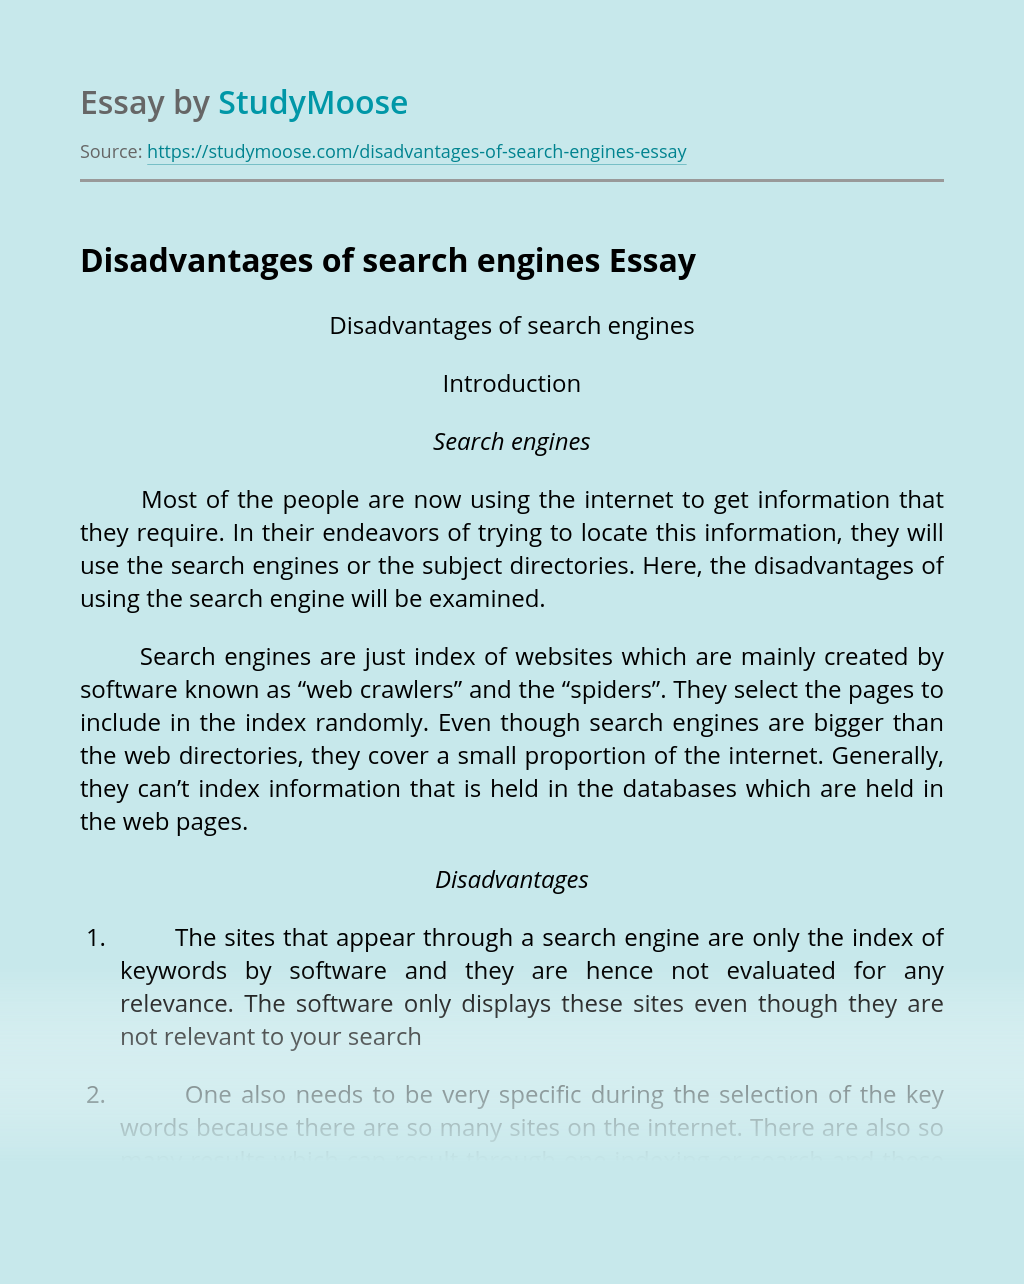 Disadvantages of search engines